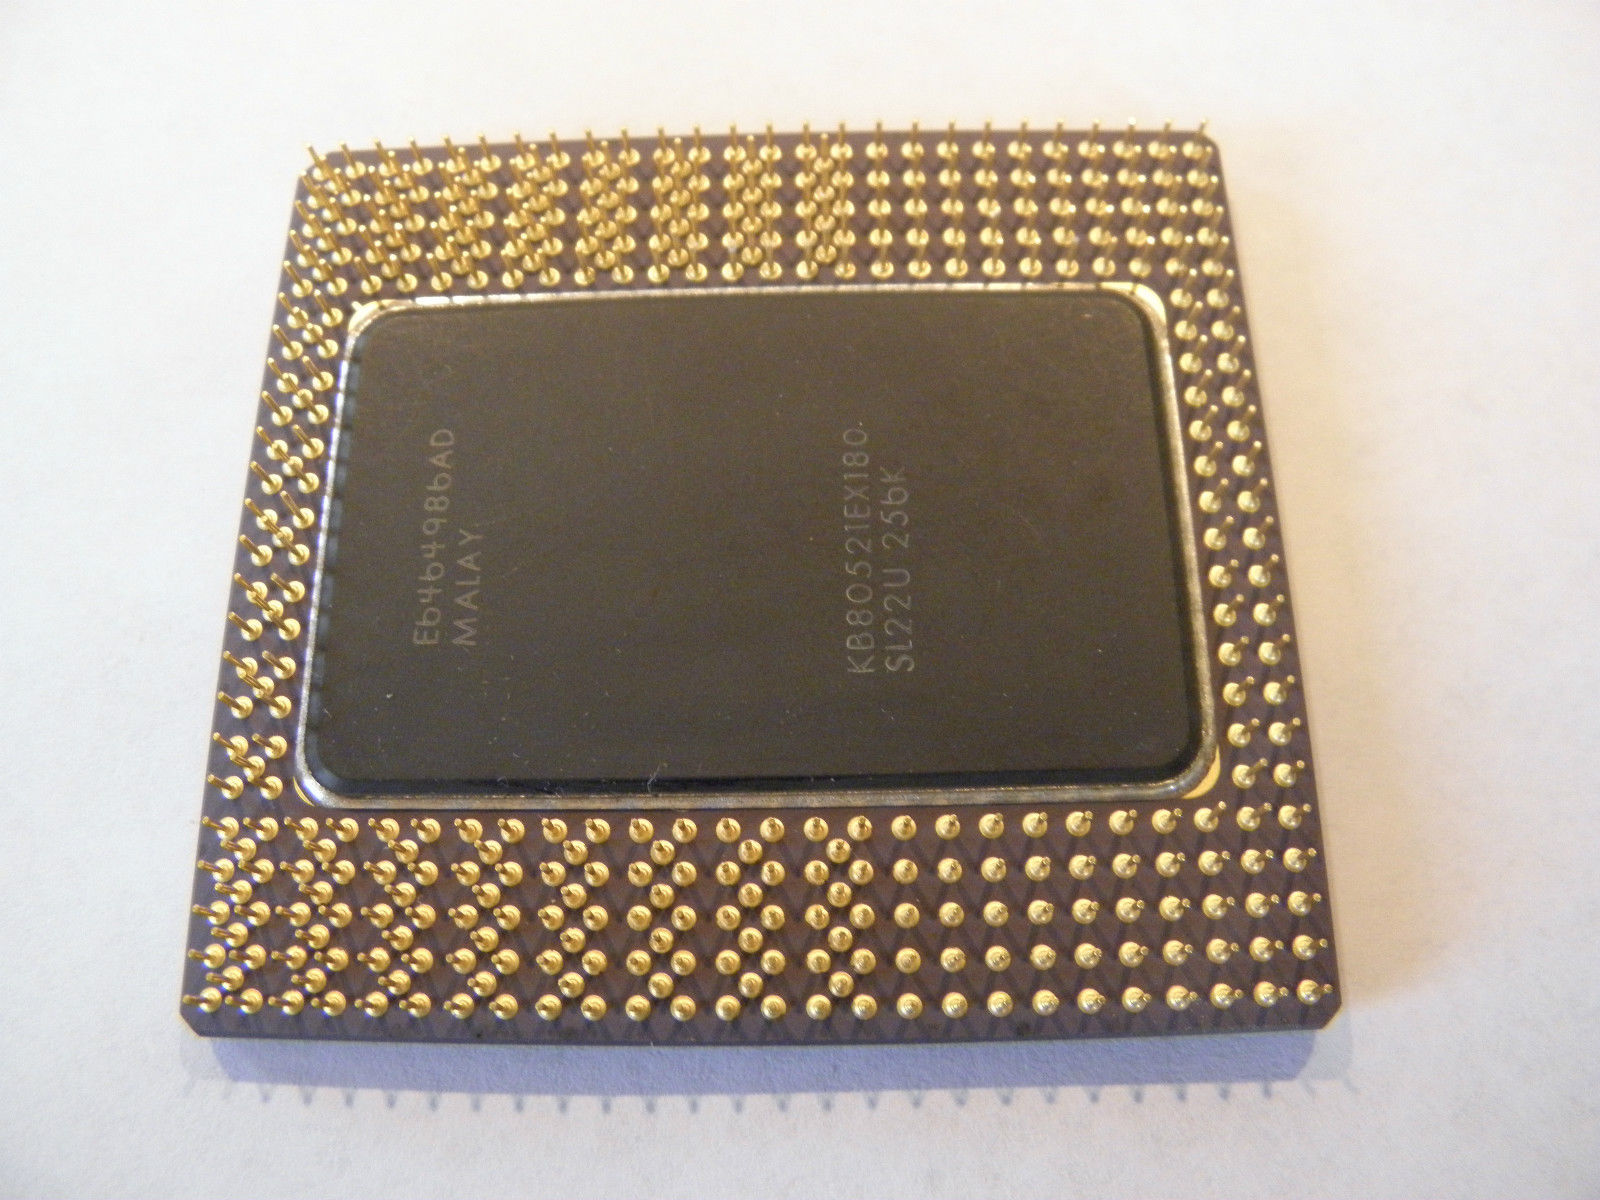 Intel Pentium Pro Ceramic CPU Processors HighGrade Gold for Recovery